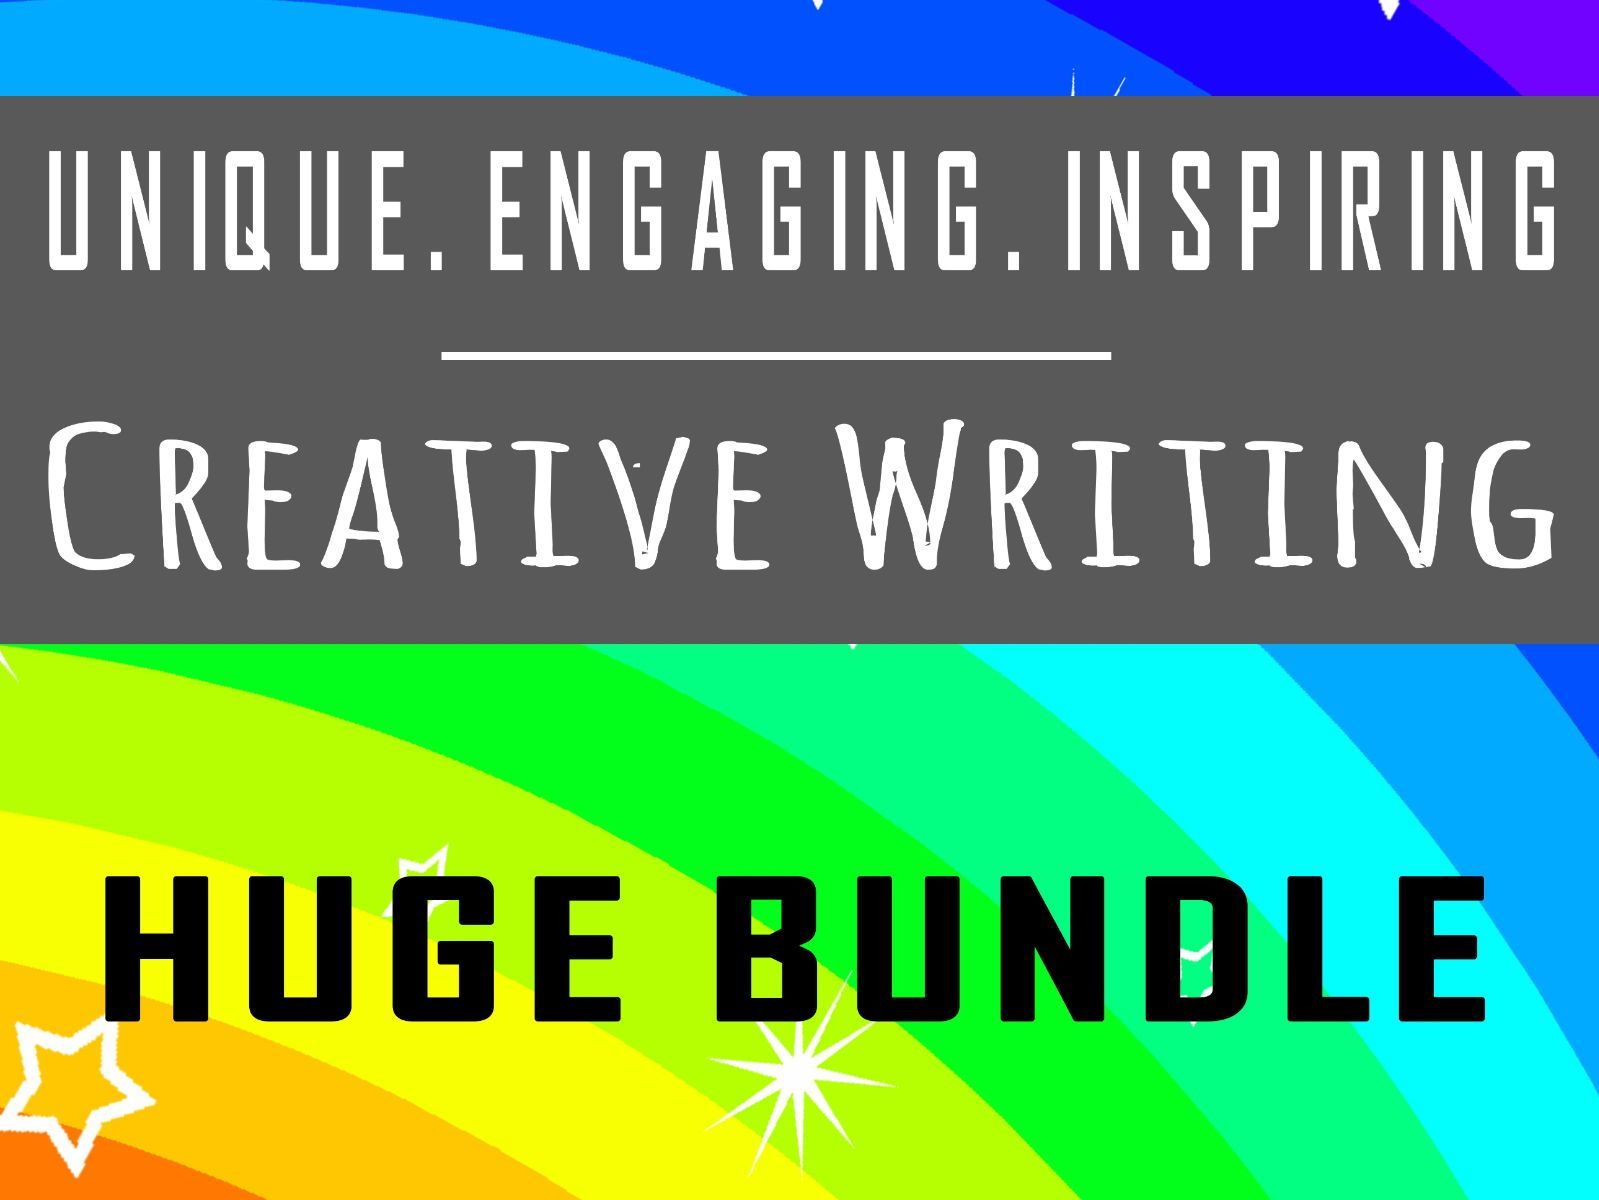 Ks2 Creative Writing Resources For Ages 6